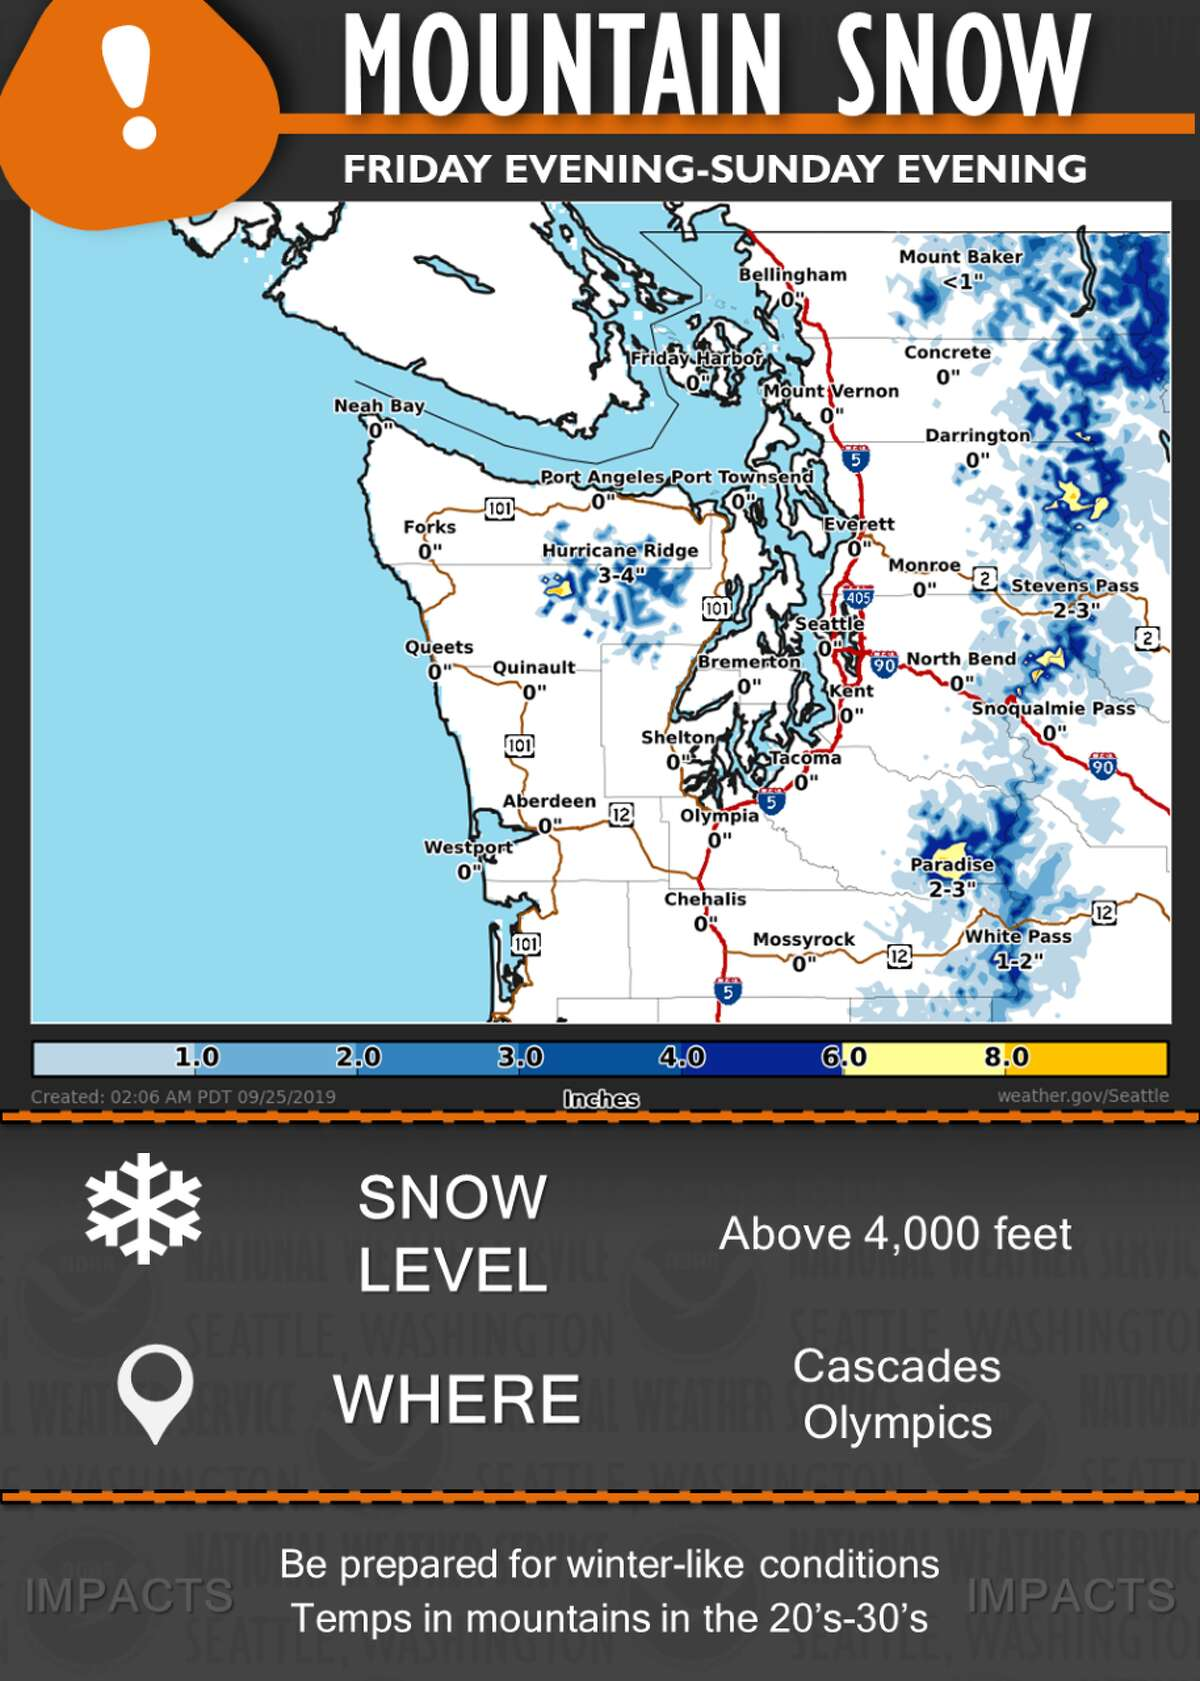 Snow levels will lower to 4,000-5,000 feet by Friday with cooler air across the Pacific Northwest. Generally 2-8 inches across the higher elevations above 4,000 feet will fall through the weekend.